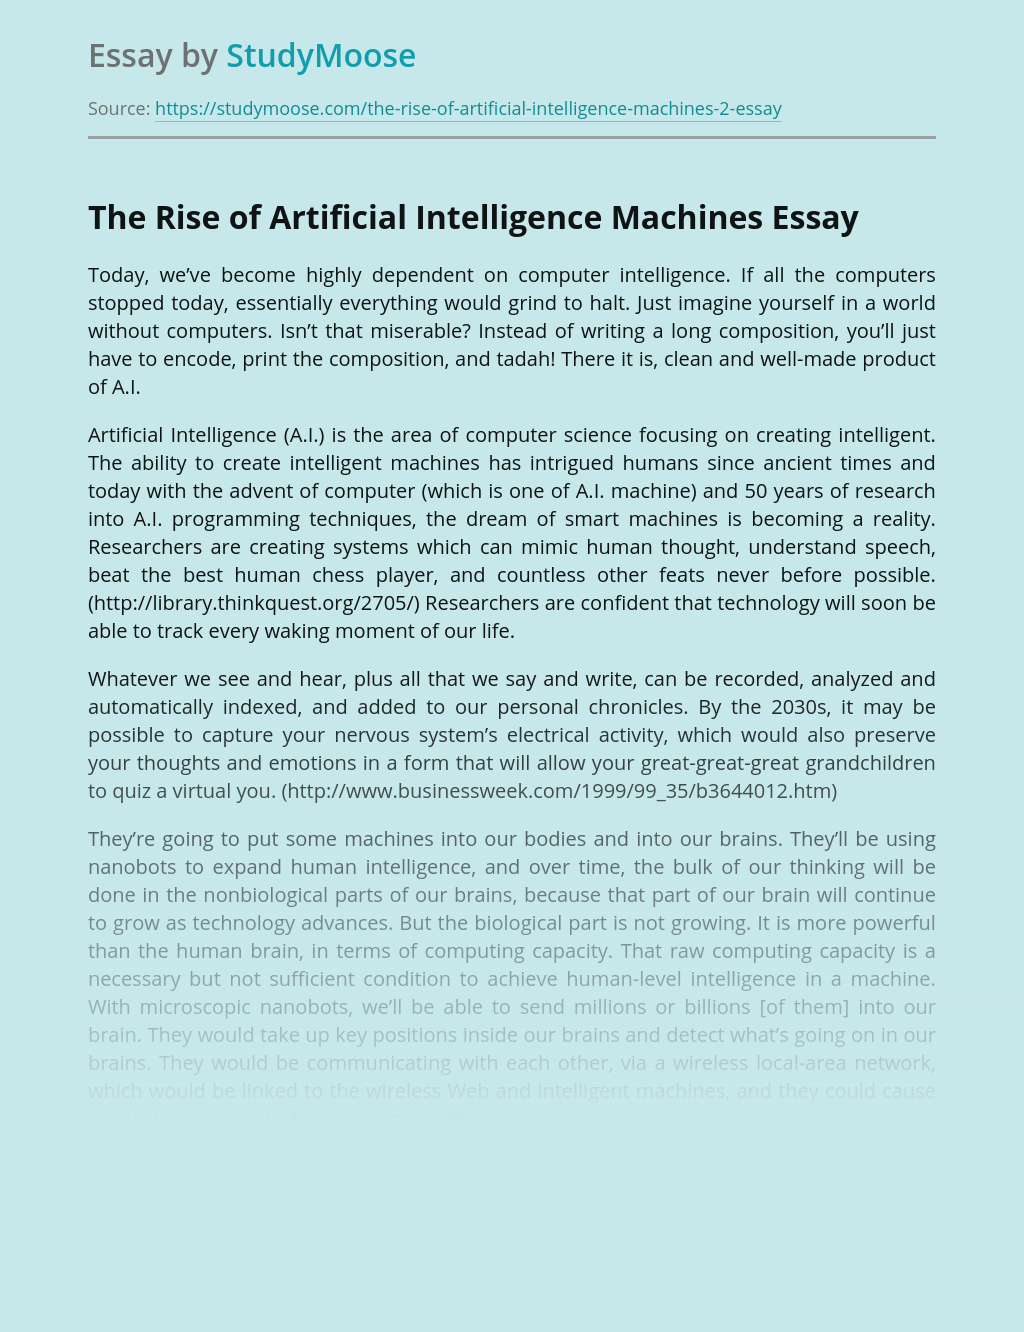 The Rise of Artificial Intelligence Machines